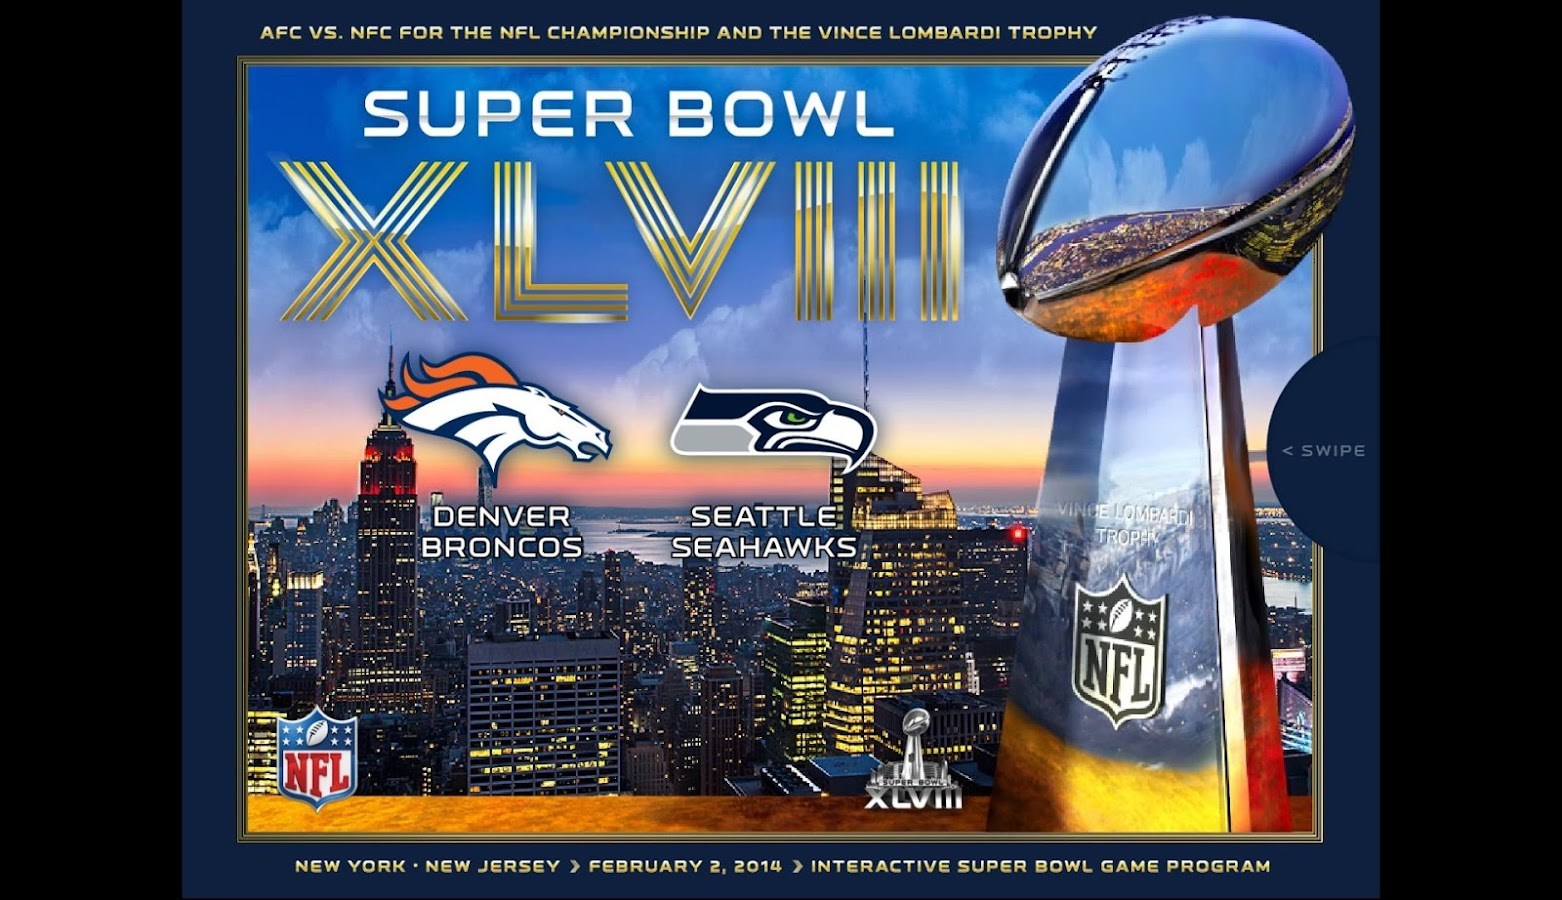 Super Bowl XLVIII Game Program - screenshot